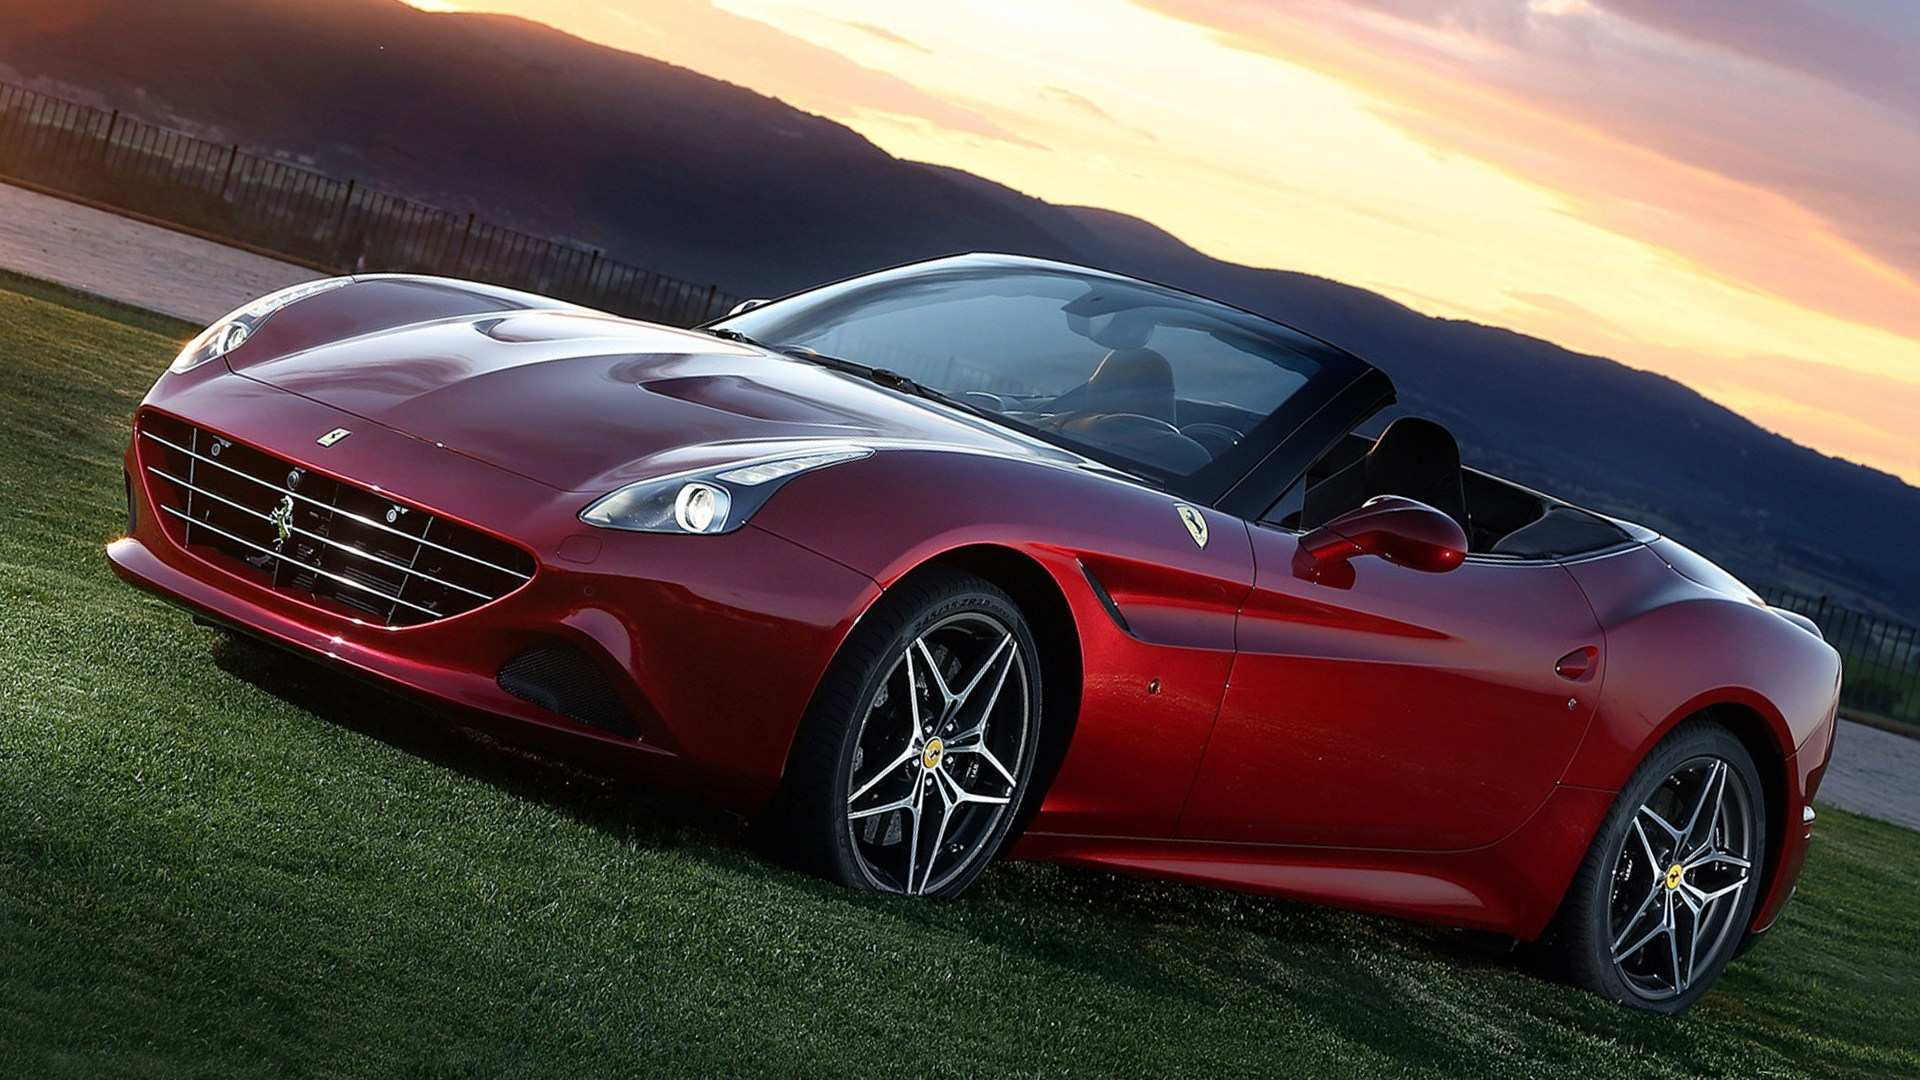 60 Gallery of 2019 Ferrari California Price New Concept for 2019 Ferrari California Price